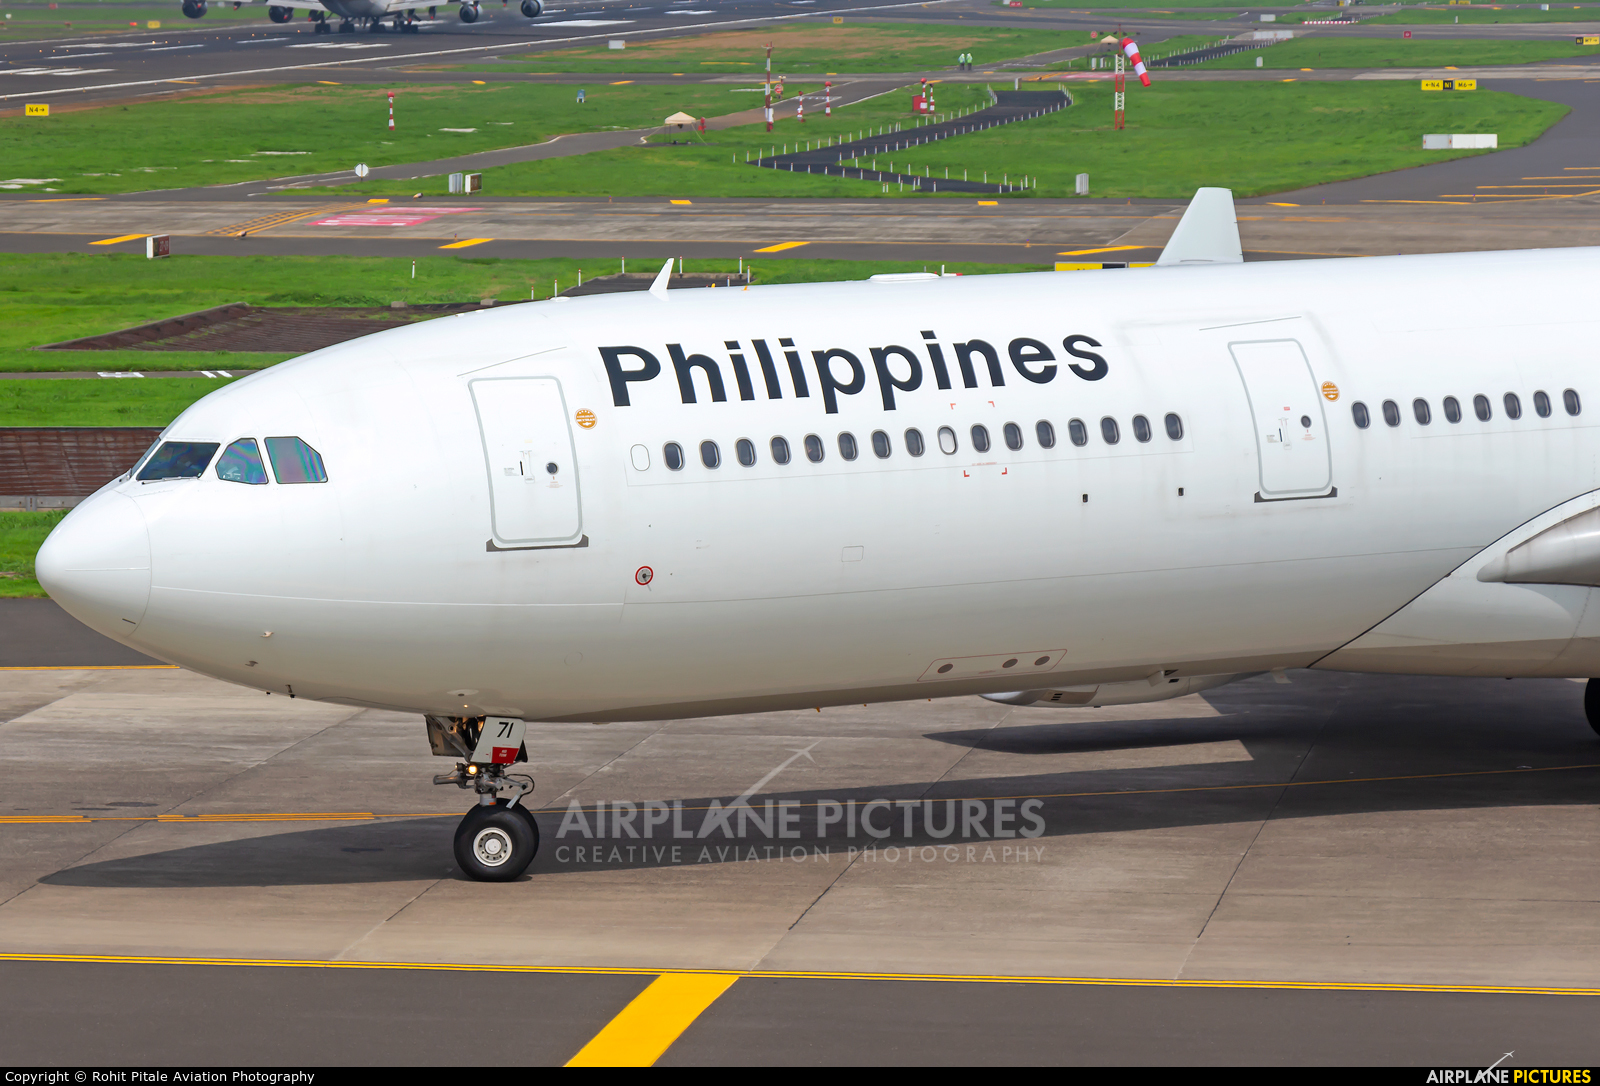 Philippines Airlines RP-C8771 aircraft at Mumbai - Chhatrapati Shivaji Intl